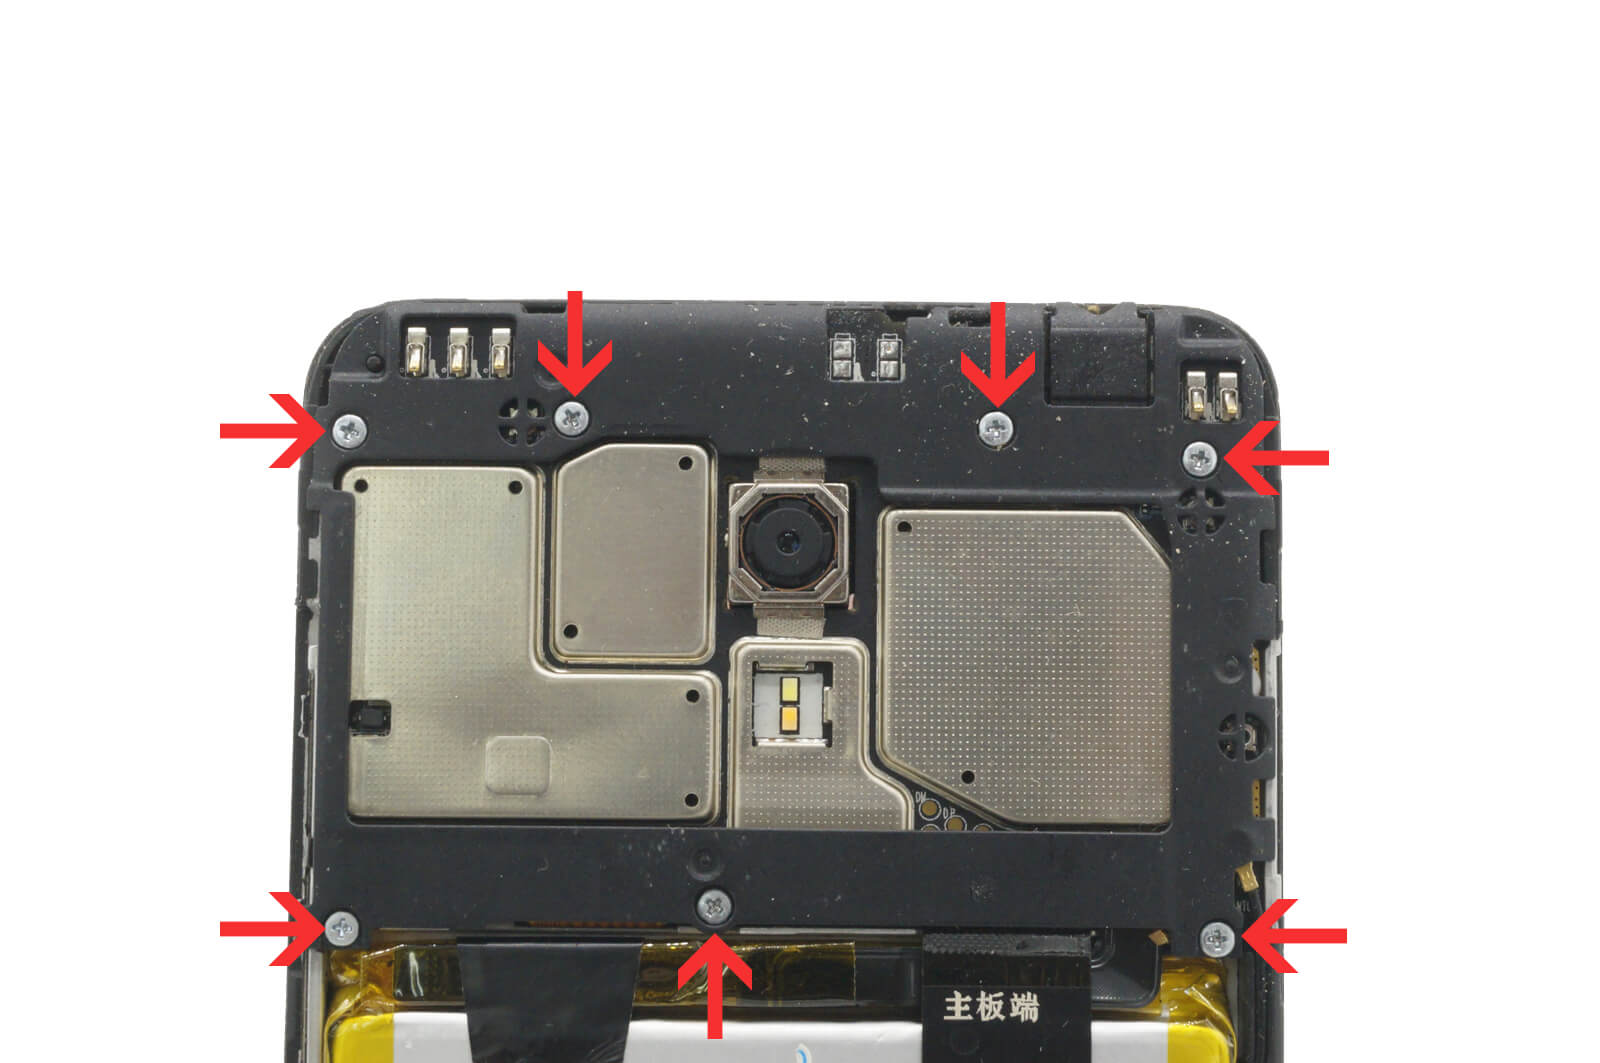 Replacing the display on the example of Meizu M6